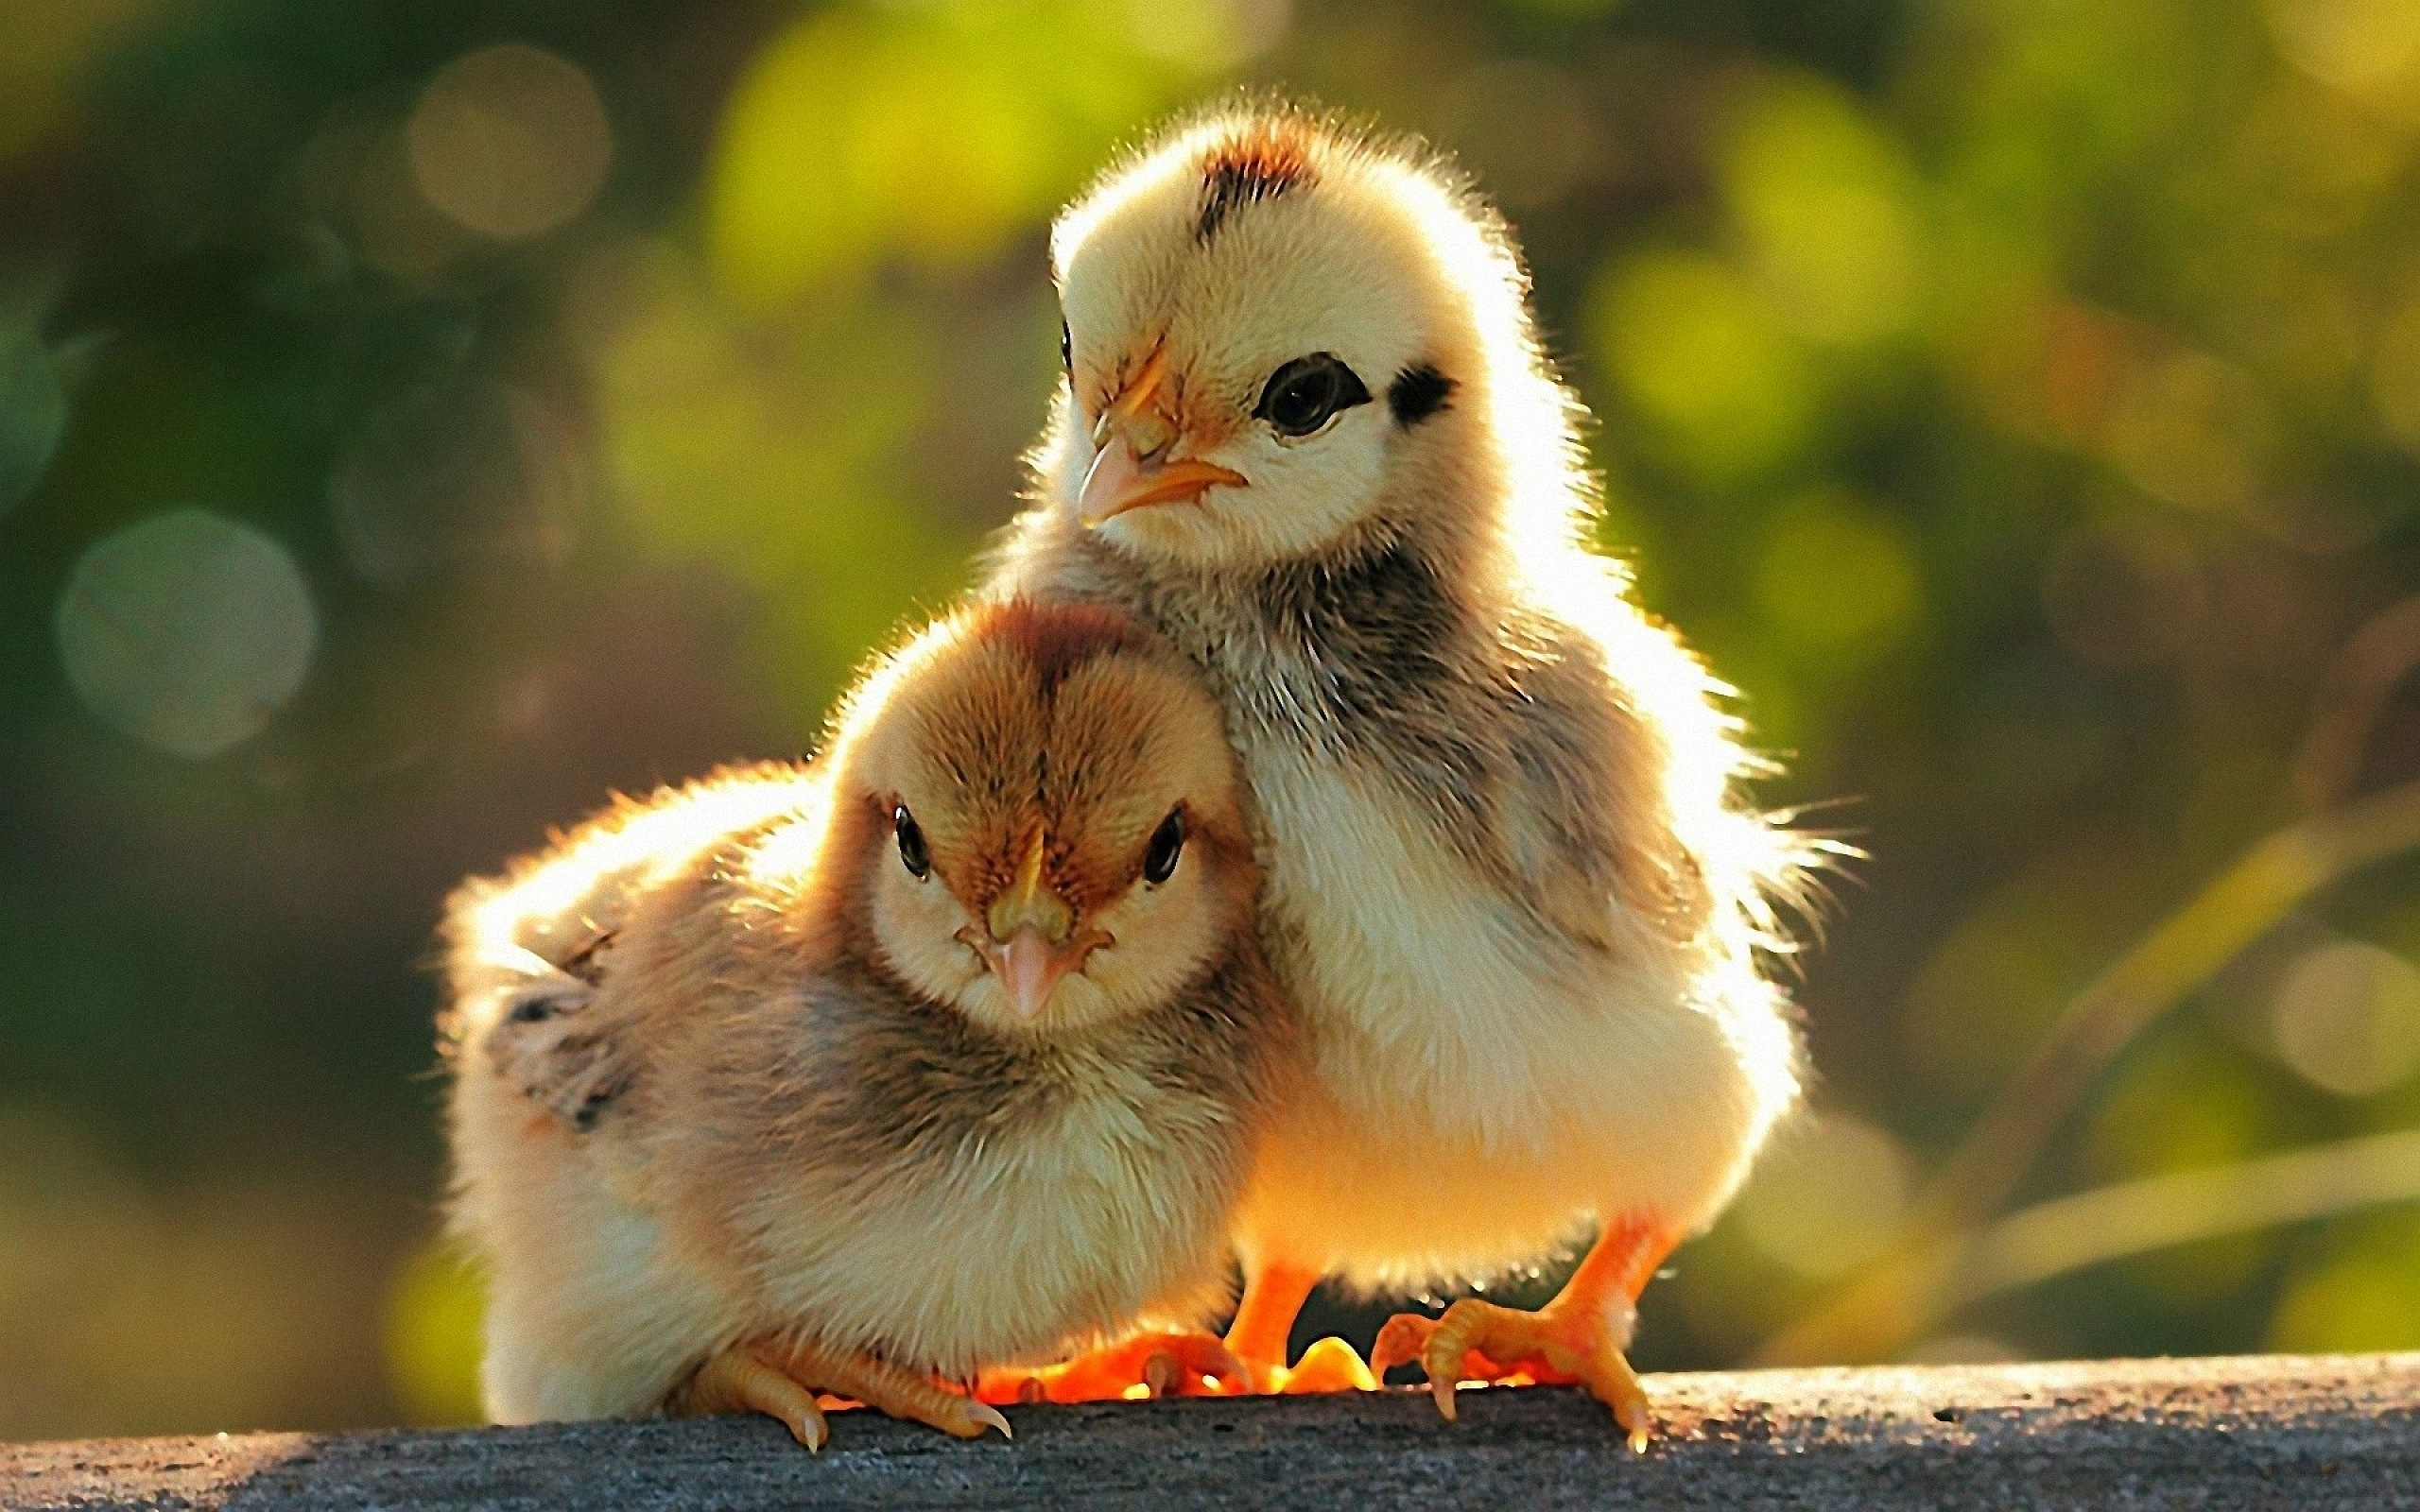 Cute Baby Animal Wallpapers 2560x1600